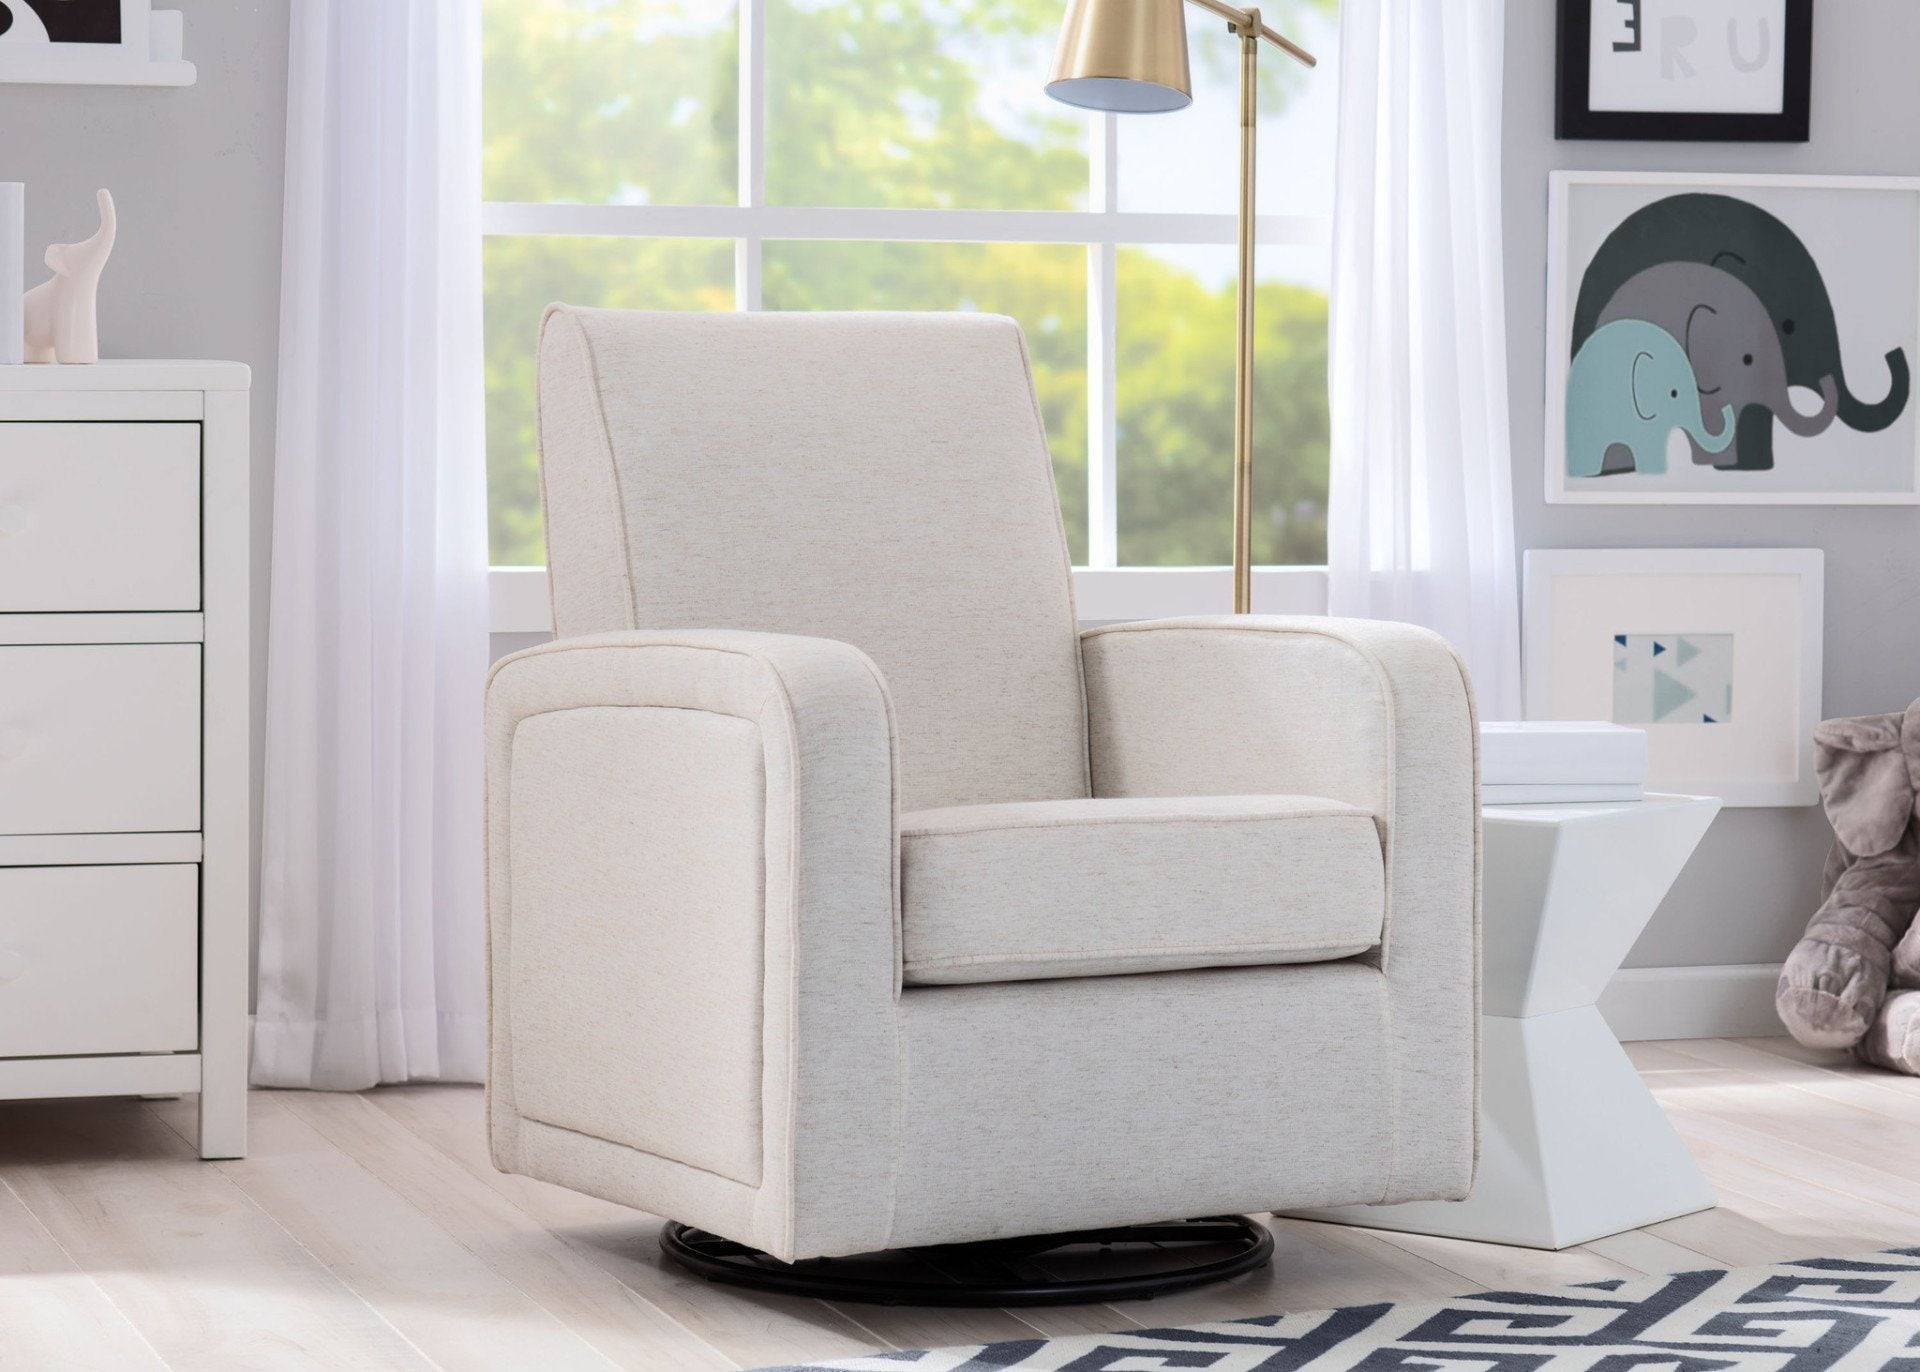 white item glider wood ottoman american chair room furniture set living and from ergonomic cushioned for chairs modern cushion gliders rocker with padded rocking nursery in